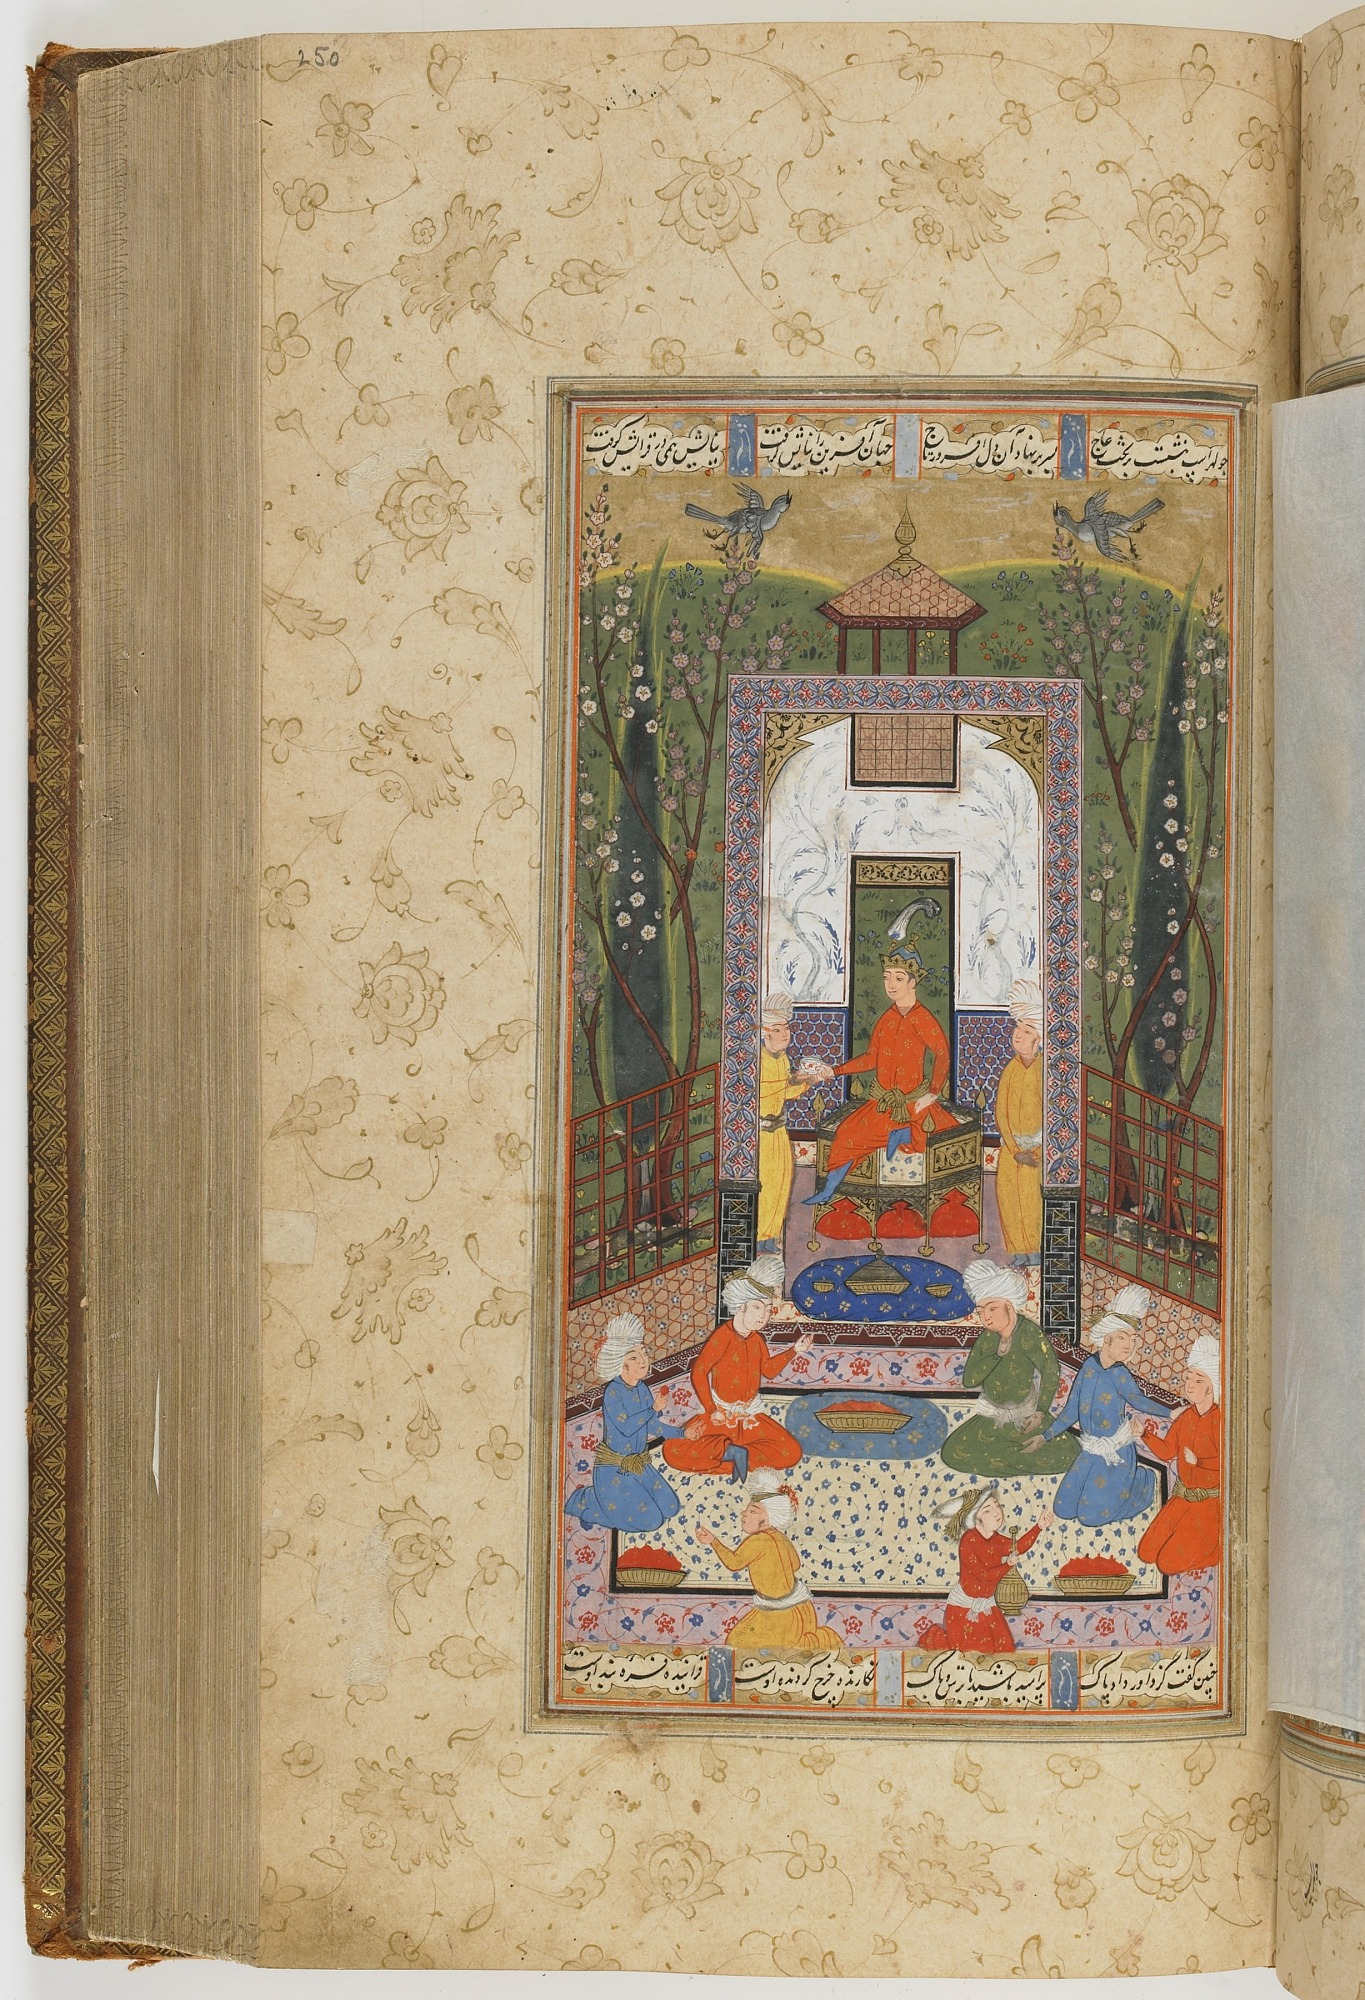 folio 250 recto: The Shahnama (Book of kings) by Firdausi (d. 1020)